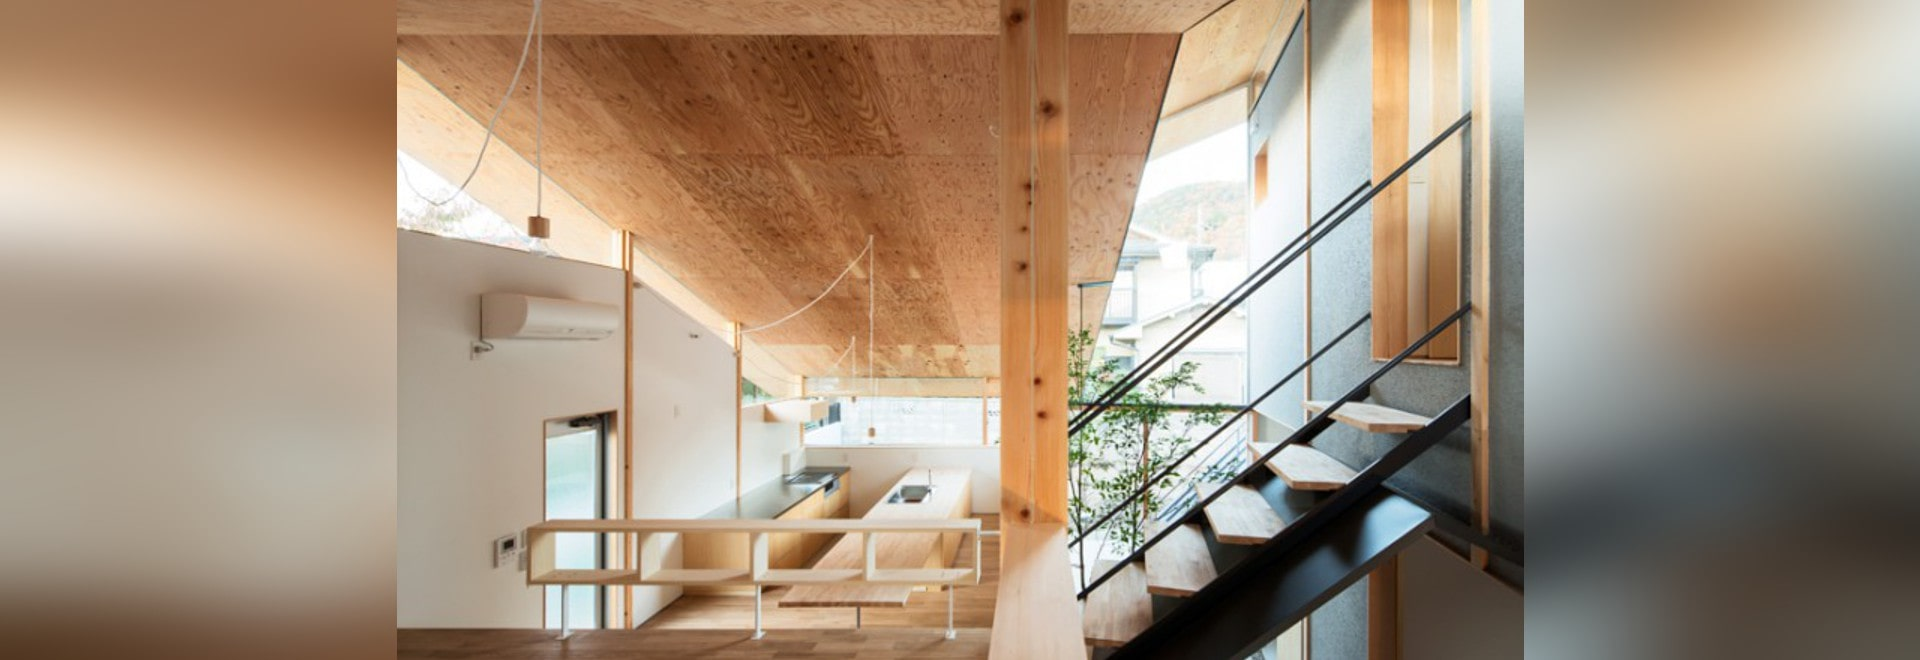 HOUSE UNDER THE EAVES BY Y+M DESIGN OFFICE